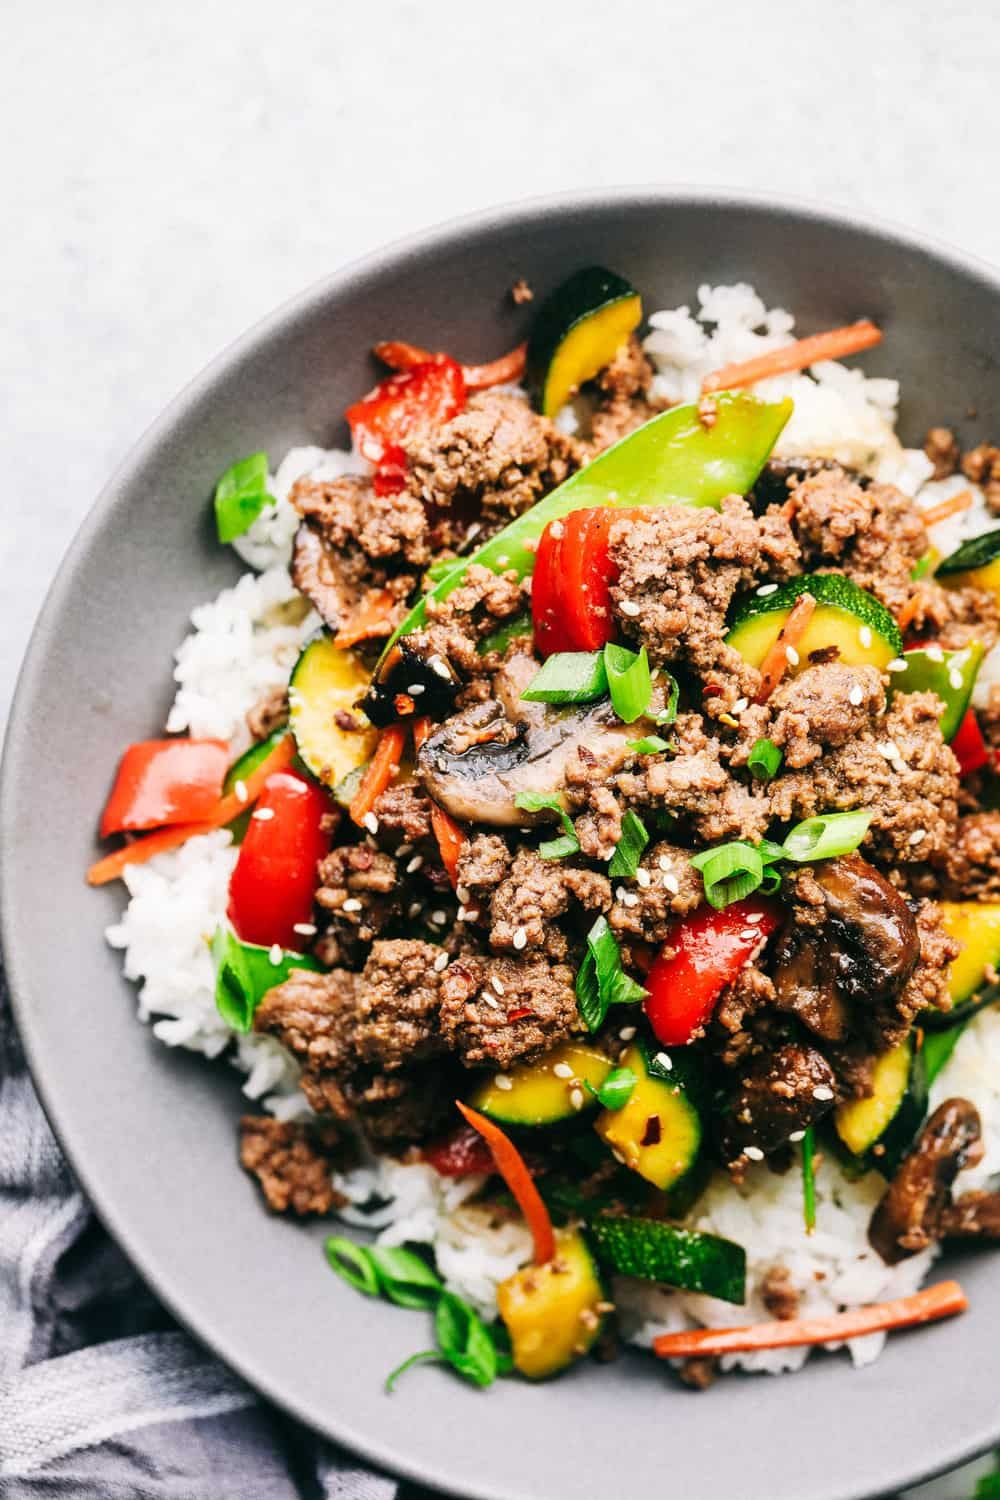 Korean Ground Beef Stir Fry Is Incredibly Easy To Make And Has The Best Flavor This Is Dinner With Ground Beef Beef Stir Fry Recipes Best Ground Beef Recipes